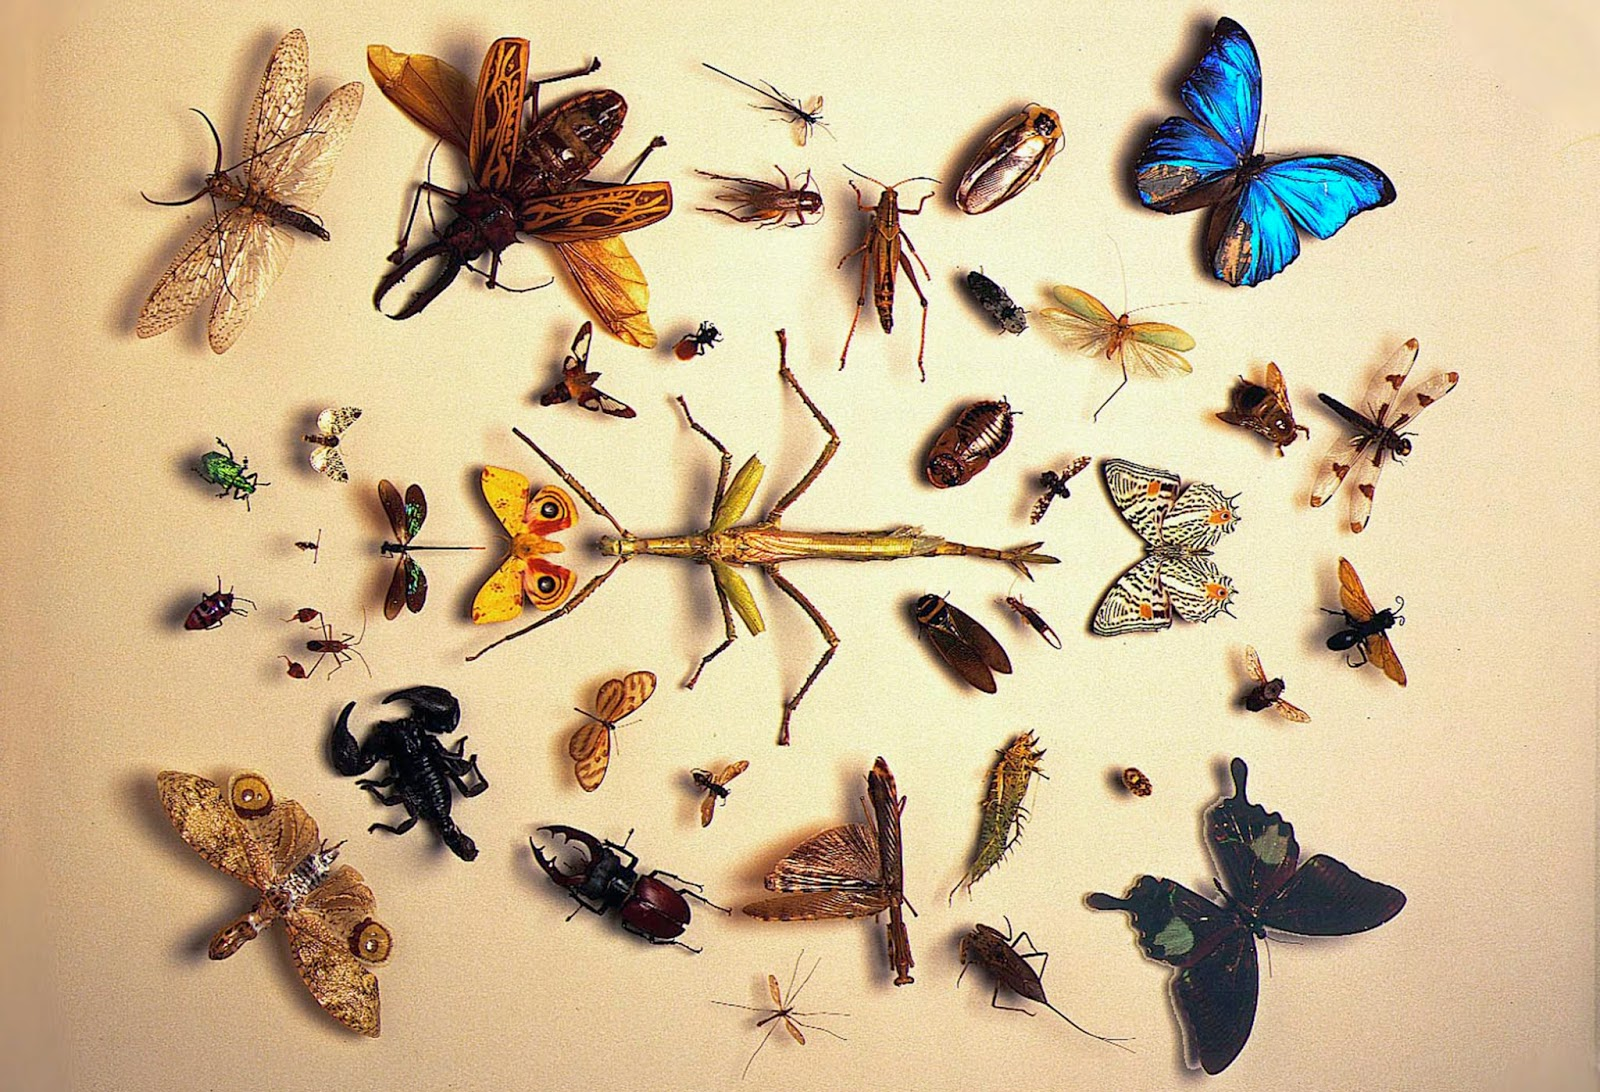 Insect Samples at display in the Invertebrate Zoology Division at American Natural History Museum (AMNH). Photo credit: AMNH